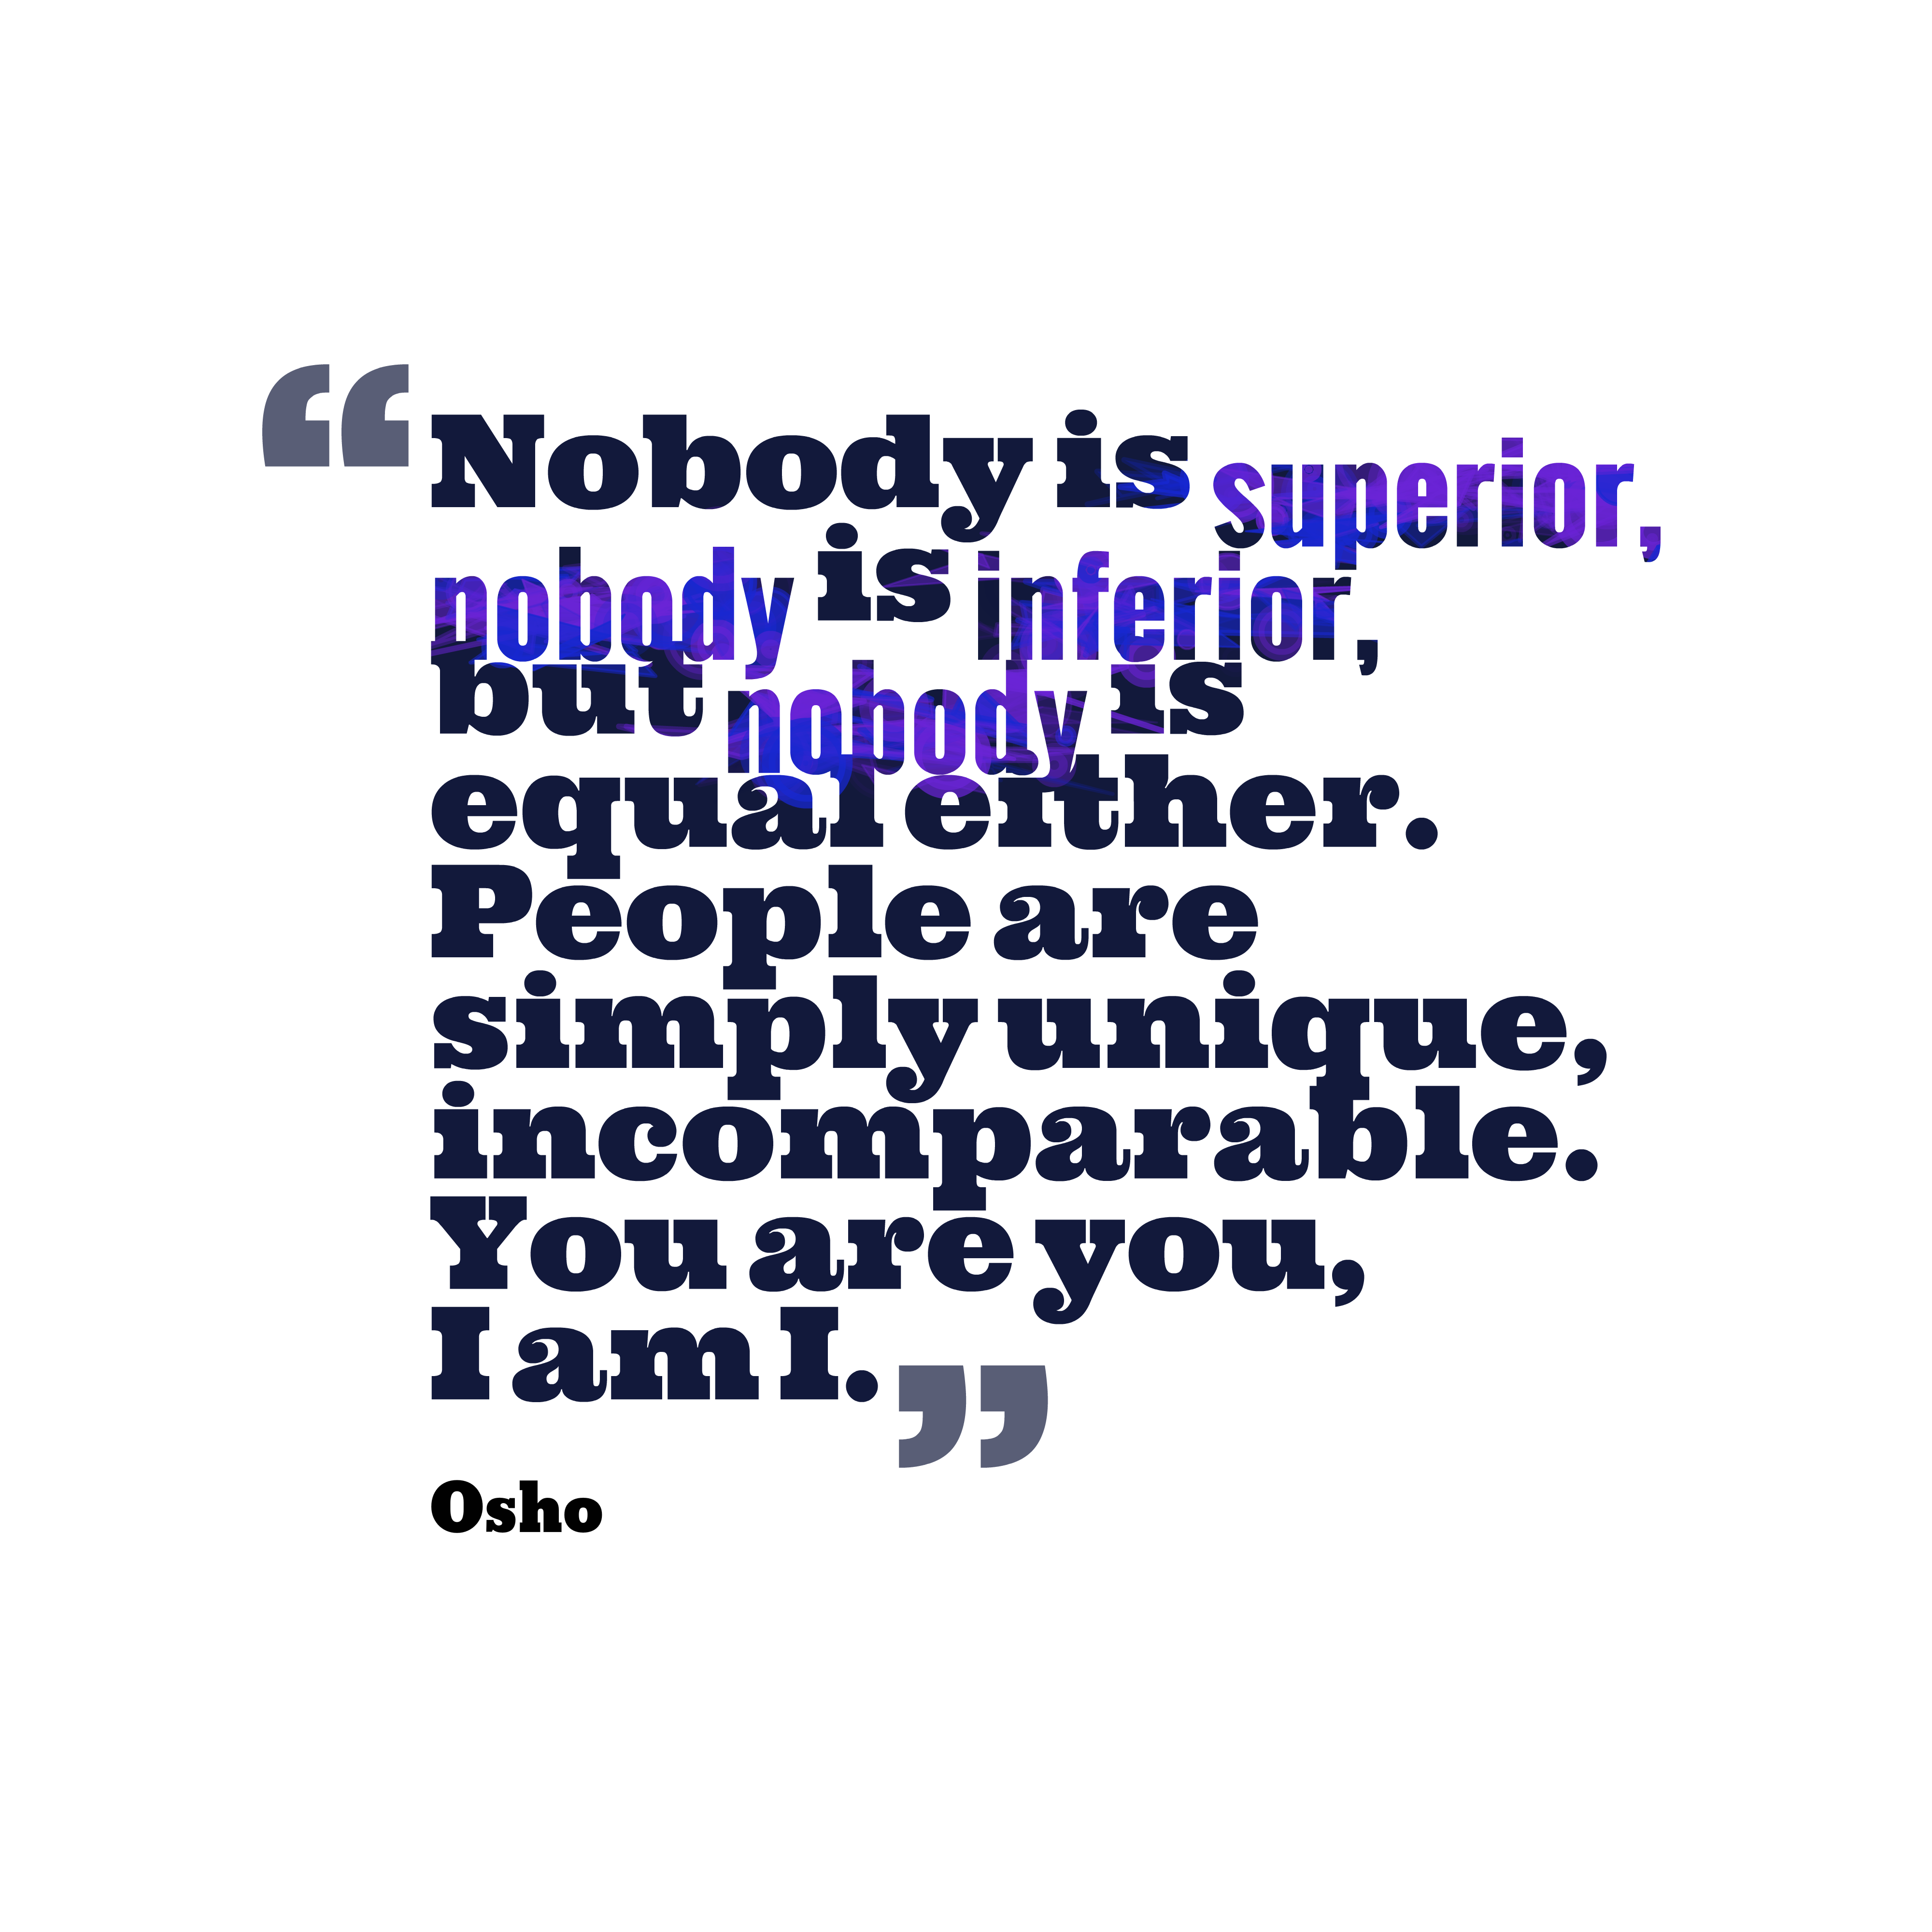 Equality Quotes | Osho Quote About Equality